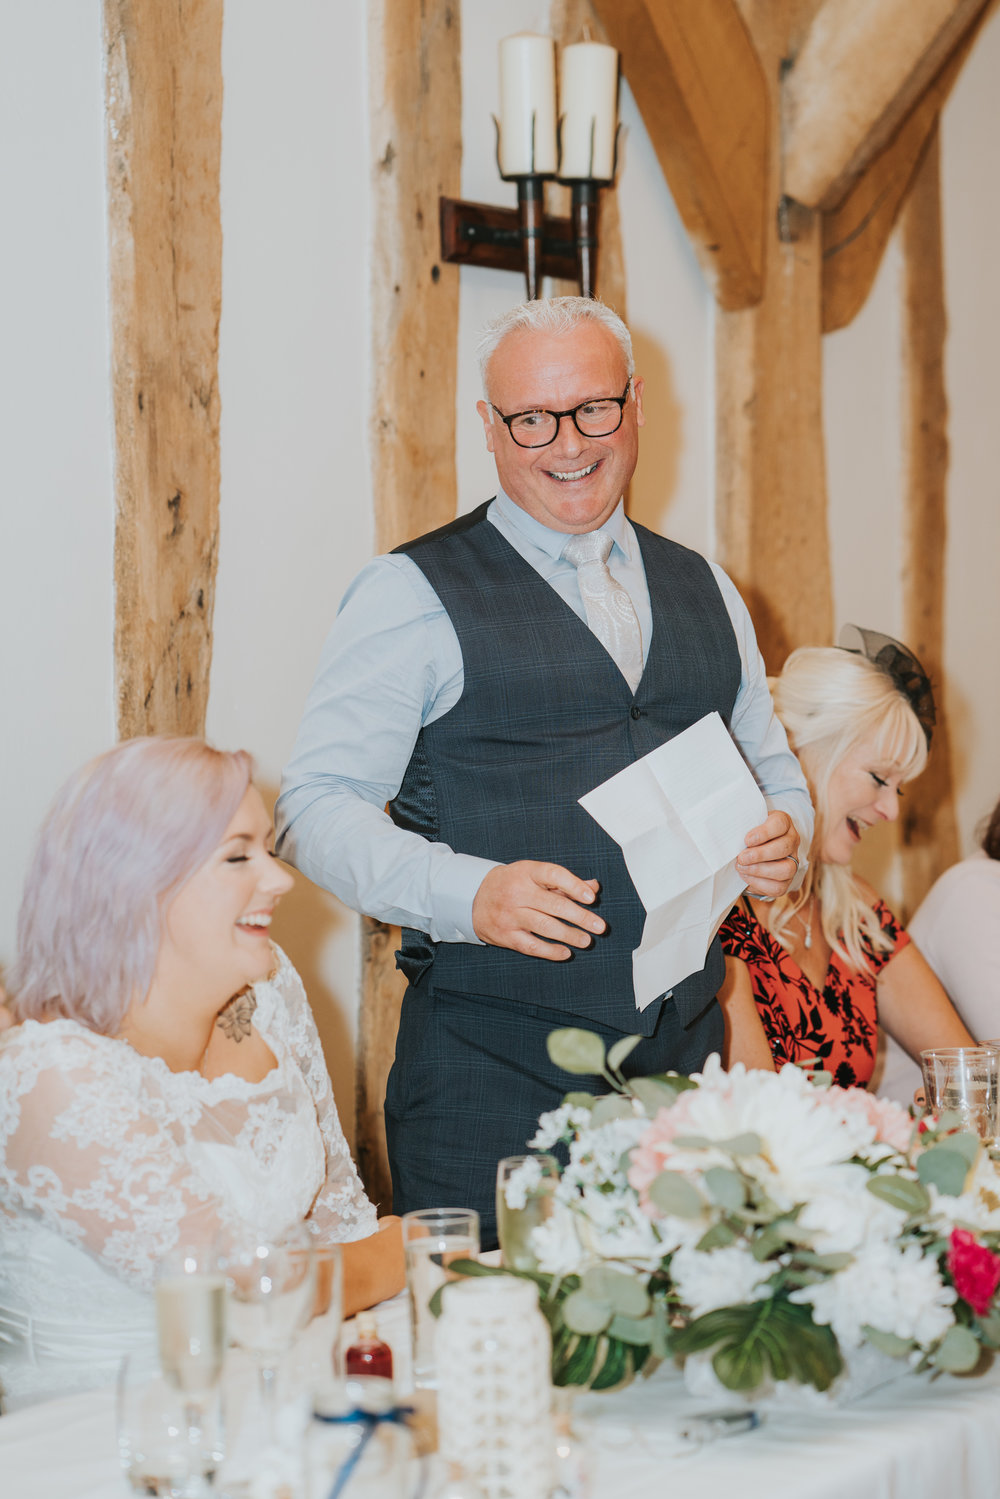 rhia-james-rustic-crabbs-barn-vintage-50s-retro-wedding-grace-elizabeth-colchester-essex-alternative-relaxed-wedding-family-photography-devon-suffolk-norfolk-essex (118 of 138).jpg